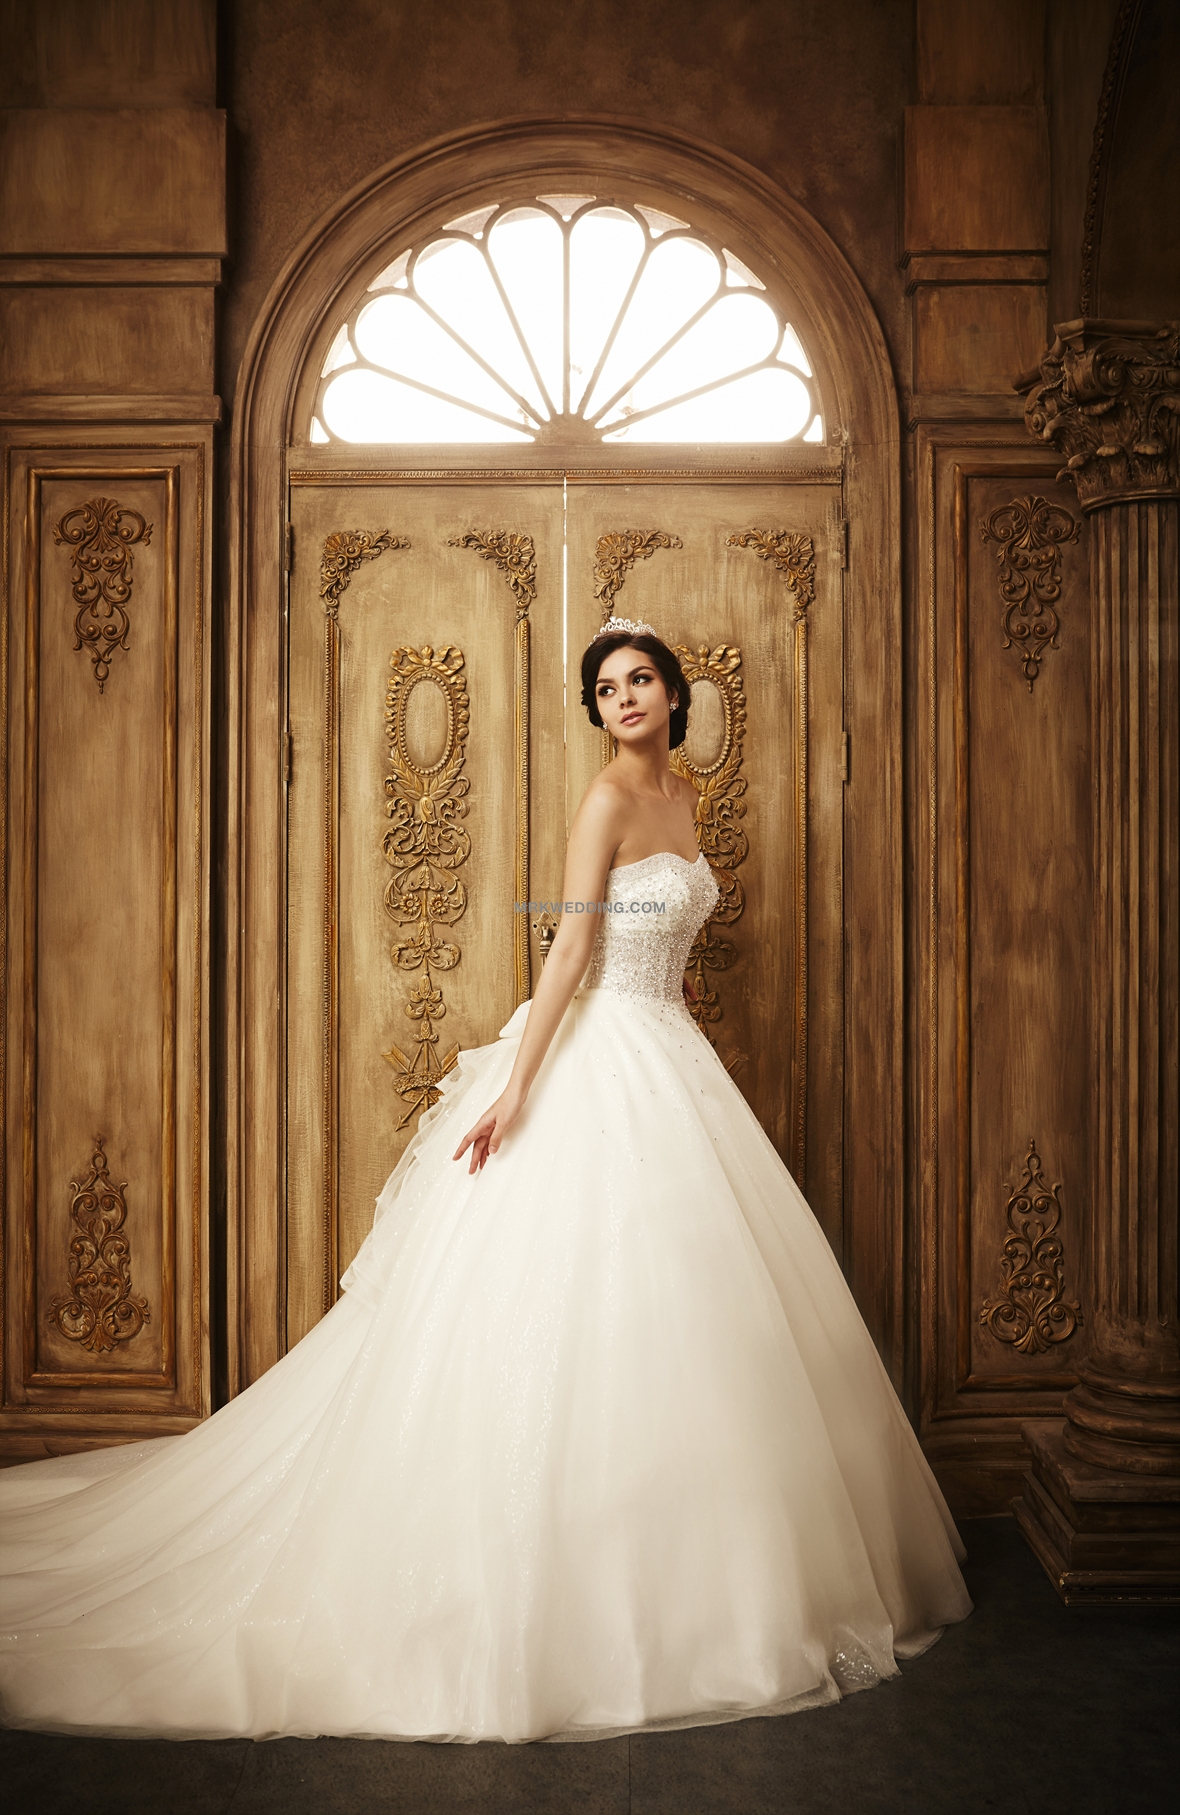 korea pre wedding dress (7).jpg